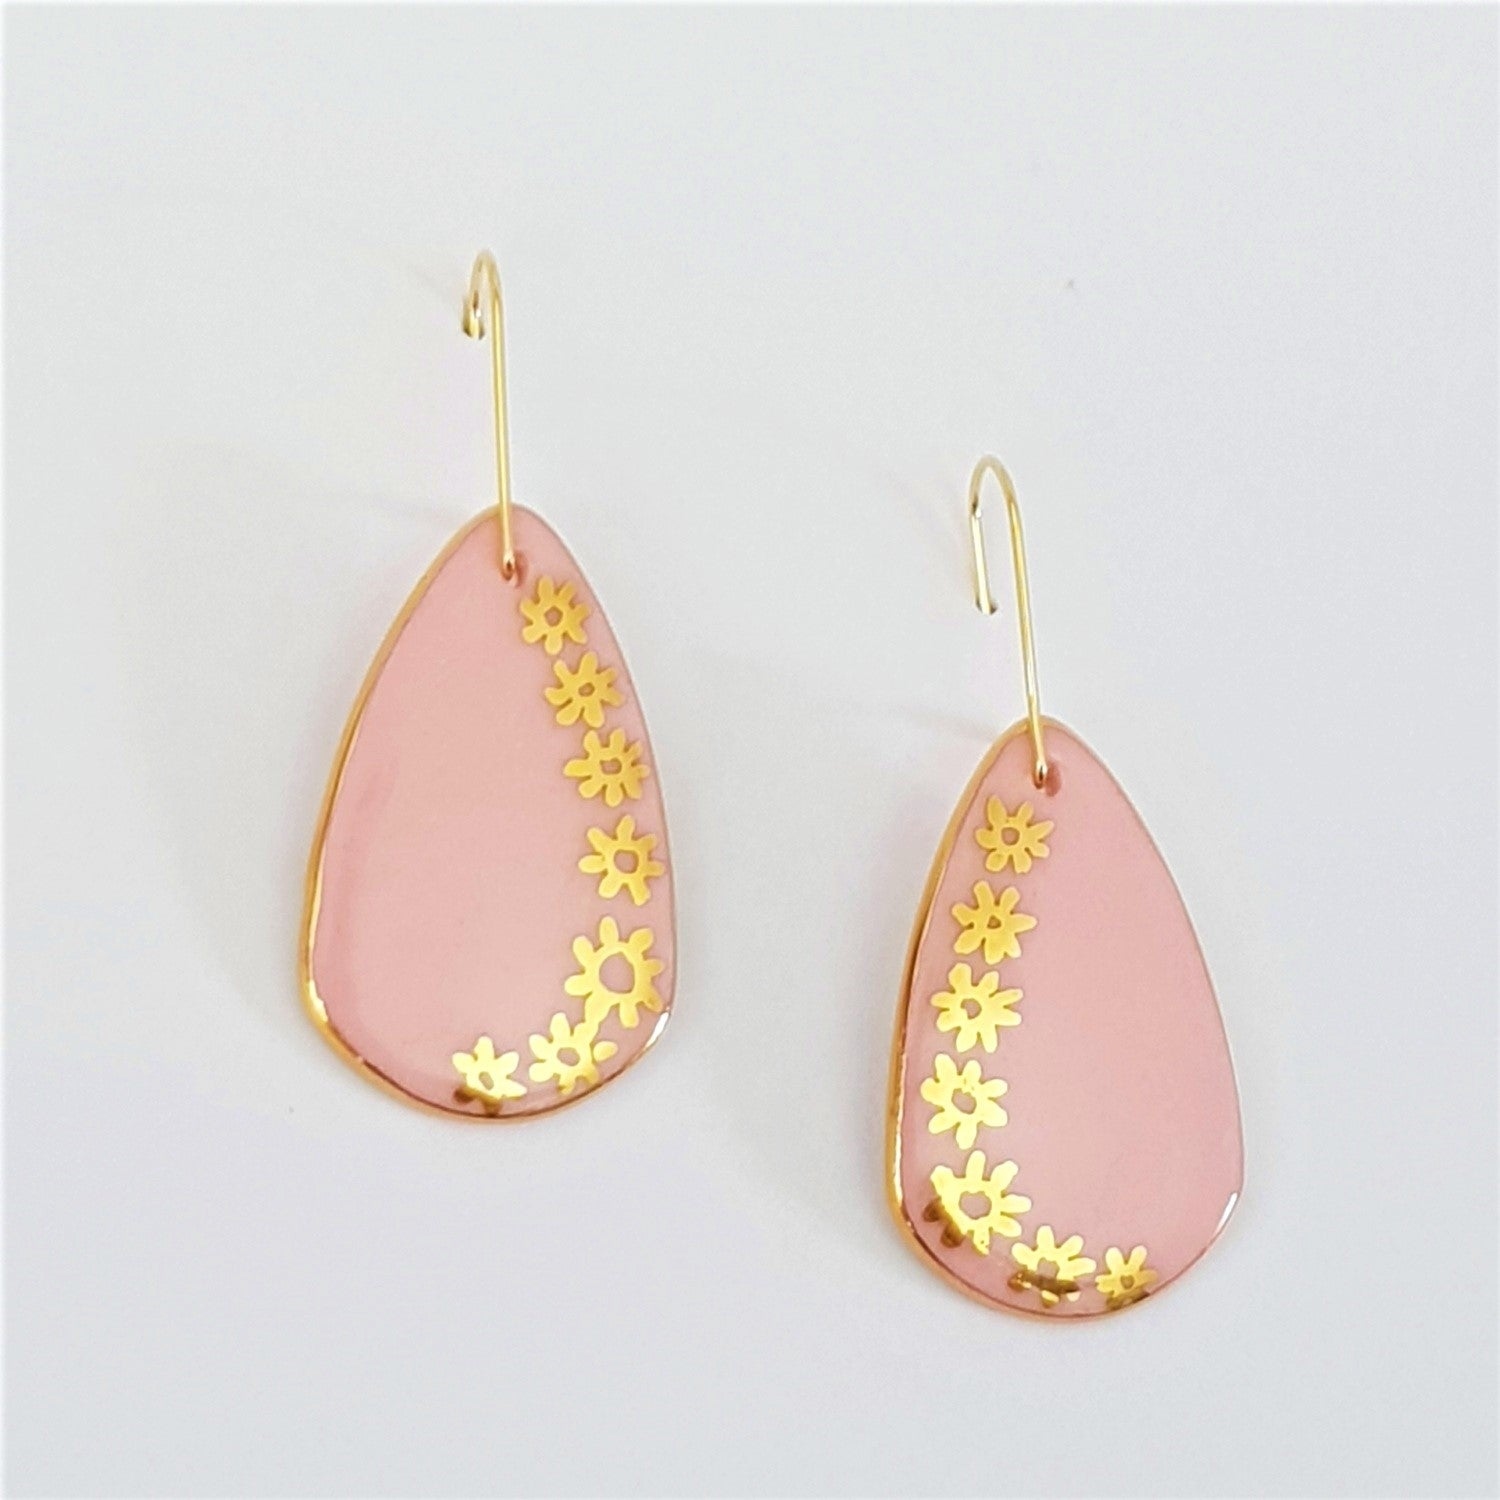 Soft pink porcelain earrings with gold daisies